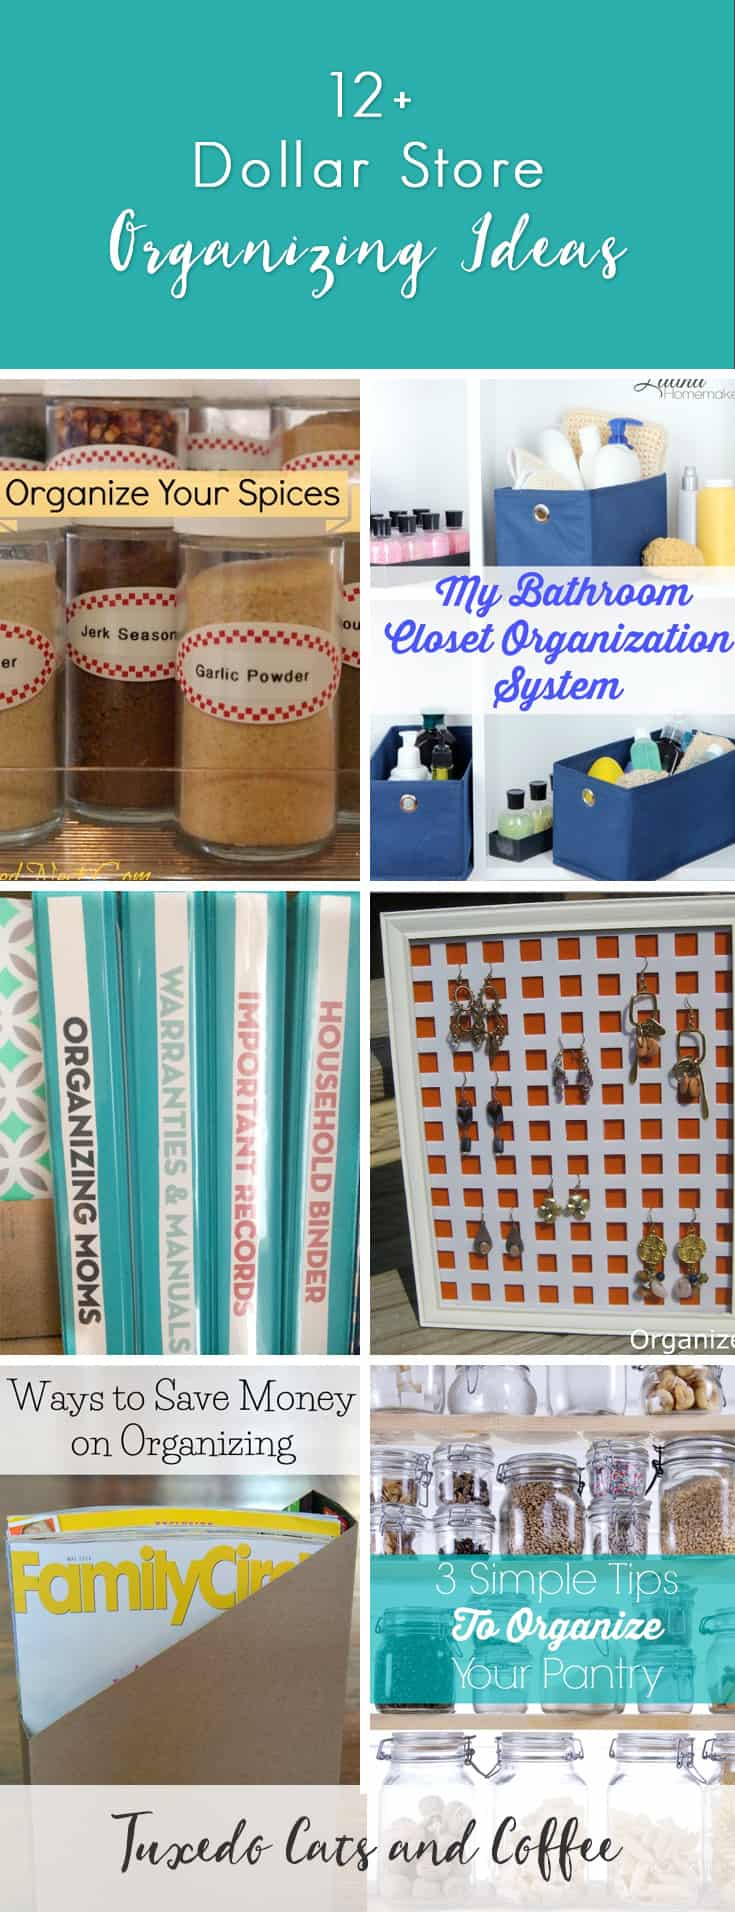 Organizing your home doesn't have to cost a ton of money. In fact, there are many Dollar Store organizing hacks that you can do for just $1 per container or with items you already have at home. Here are a bunch of dollar store organizing ideas from blogs across the web.